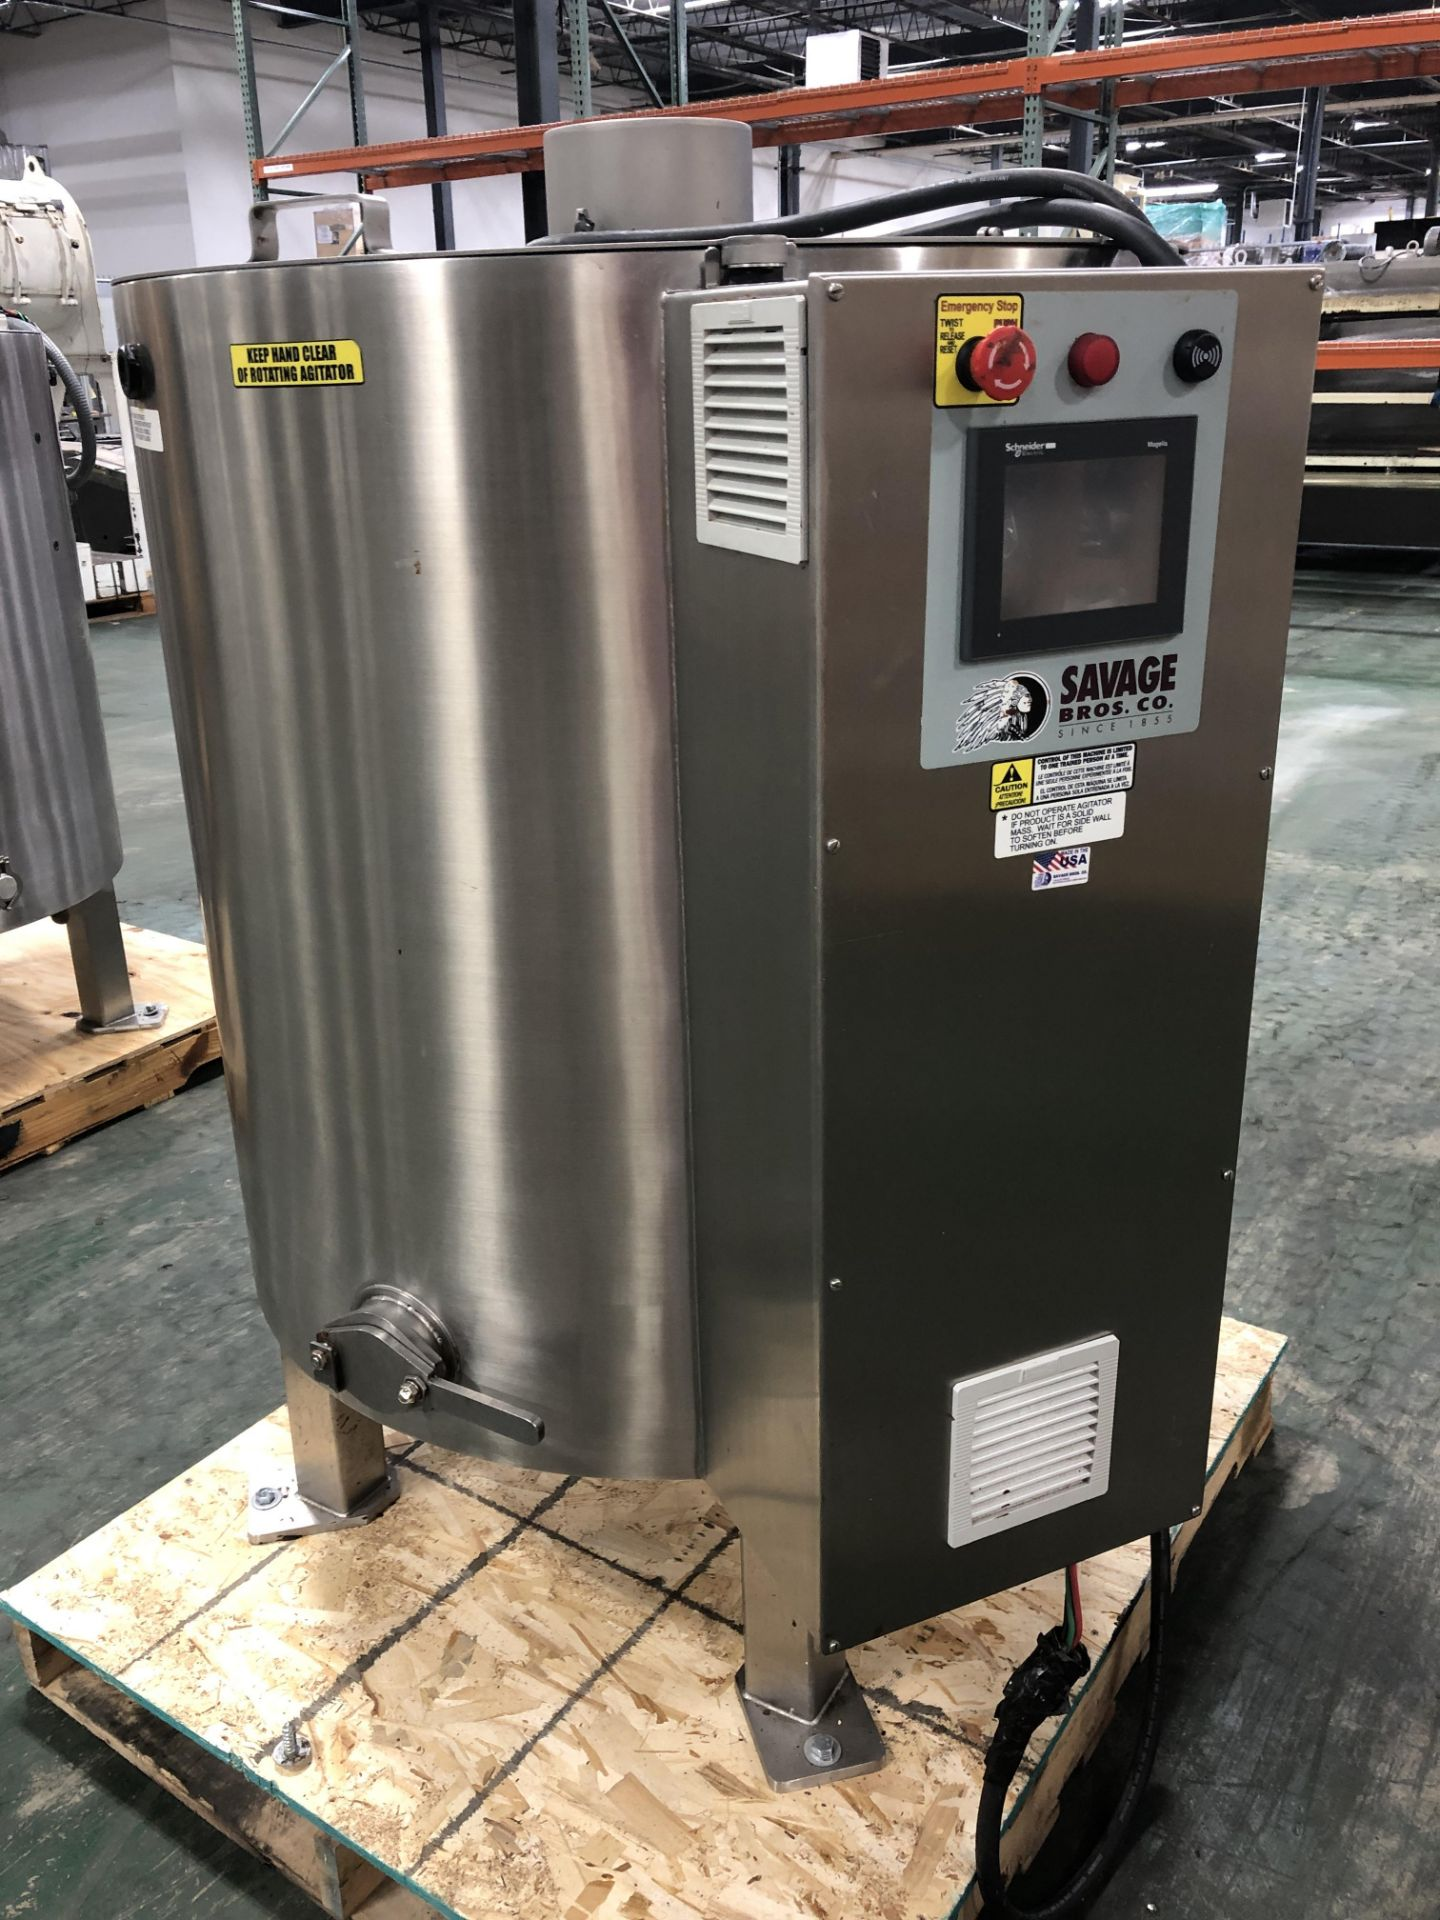 Lot 36 - Savage Stainless Steel 1250-lb Chocolate Melter, model 0974-36, with PLC touchscreen